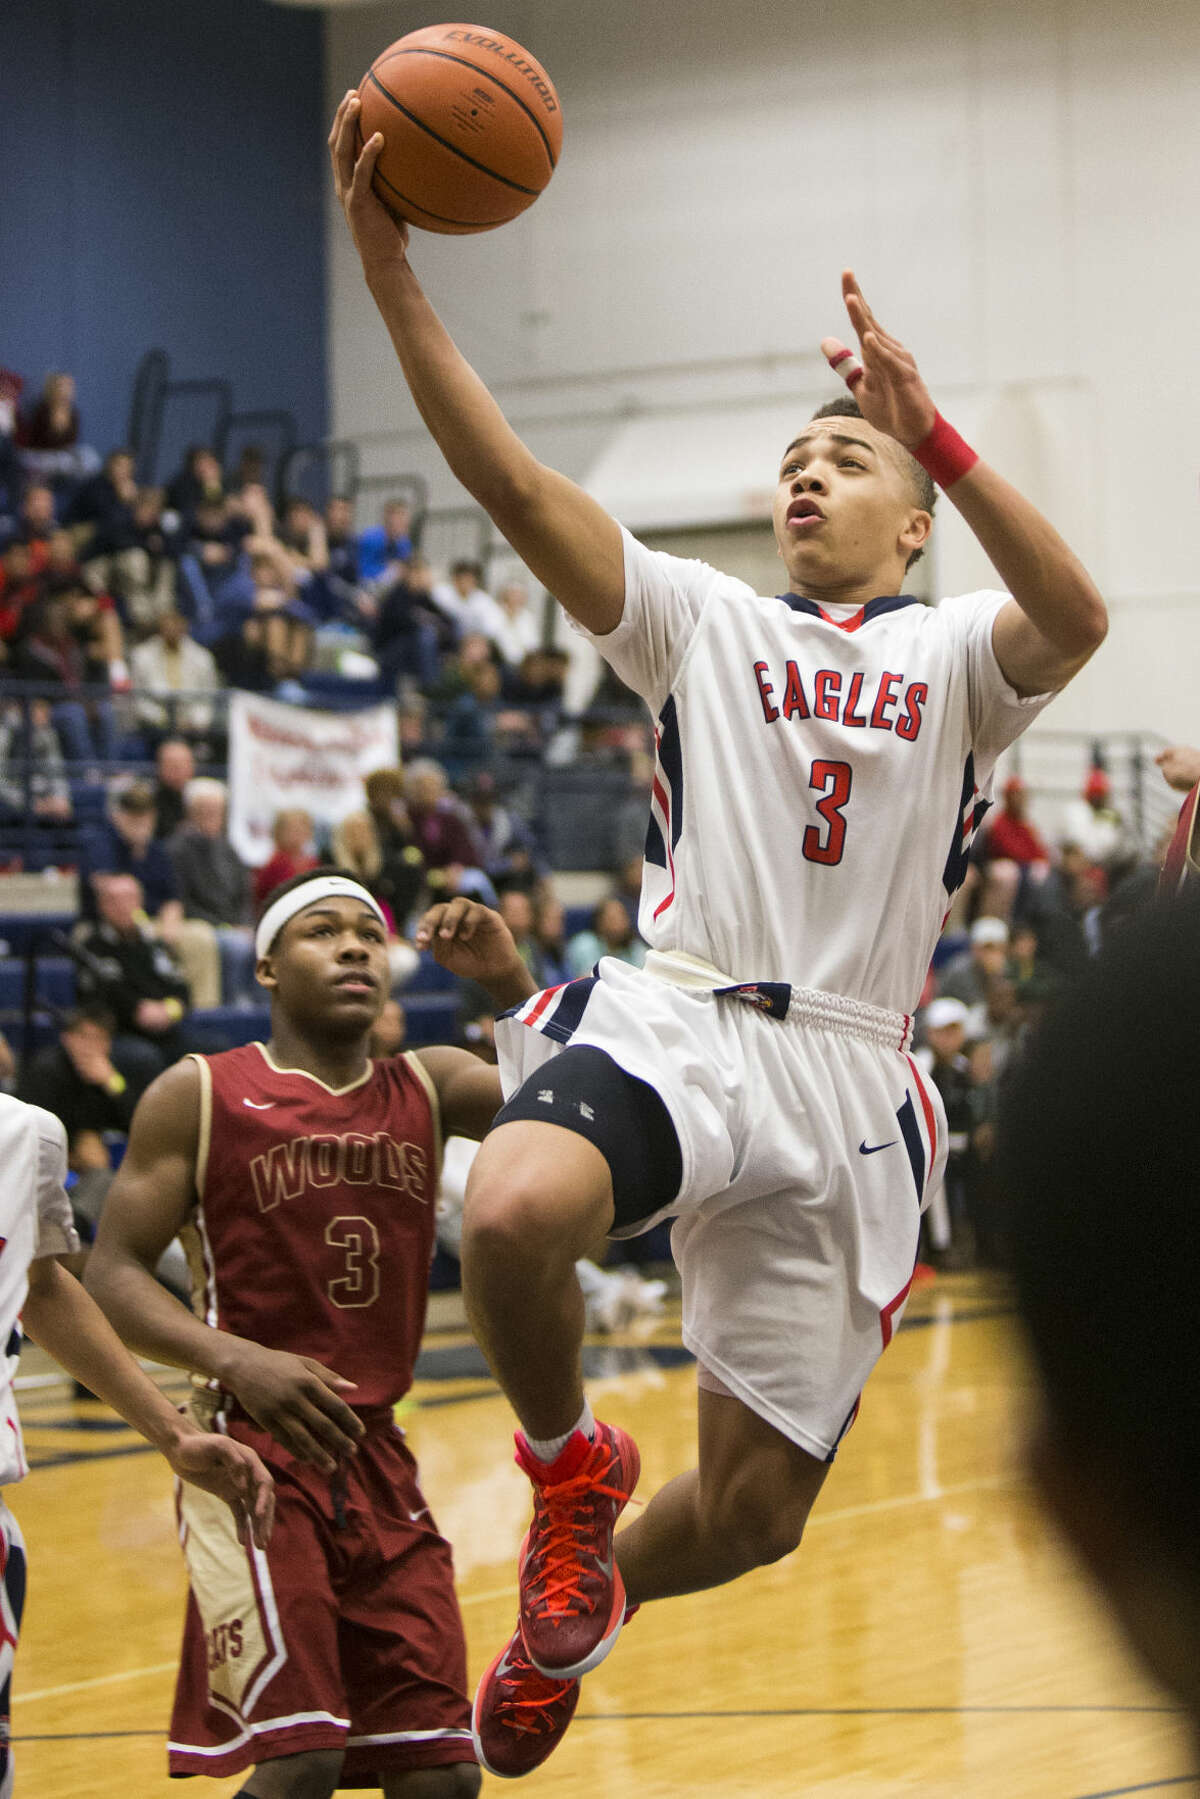 Atascocita's Carsen Edwards (3) leaps for a layup during Cy-Woods' 75-71 championship victory over Atascocita in The Insperity Holiday Classic on Dec. 30, 2014, at Kingwood High School.